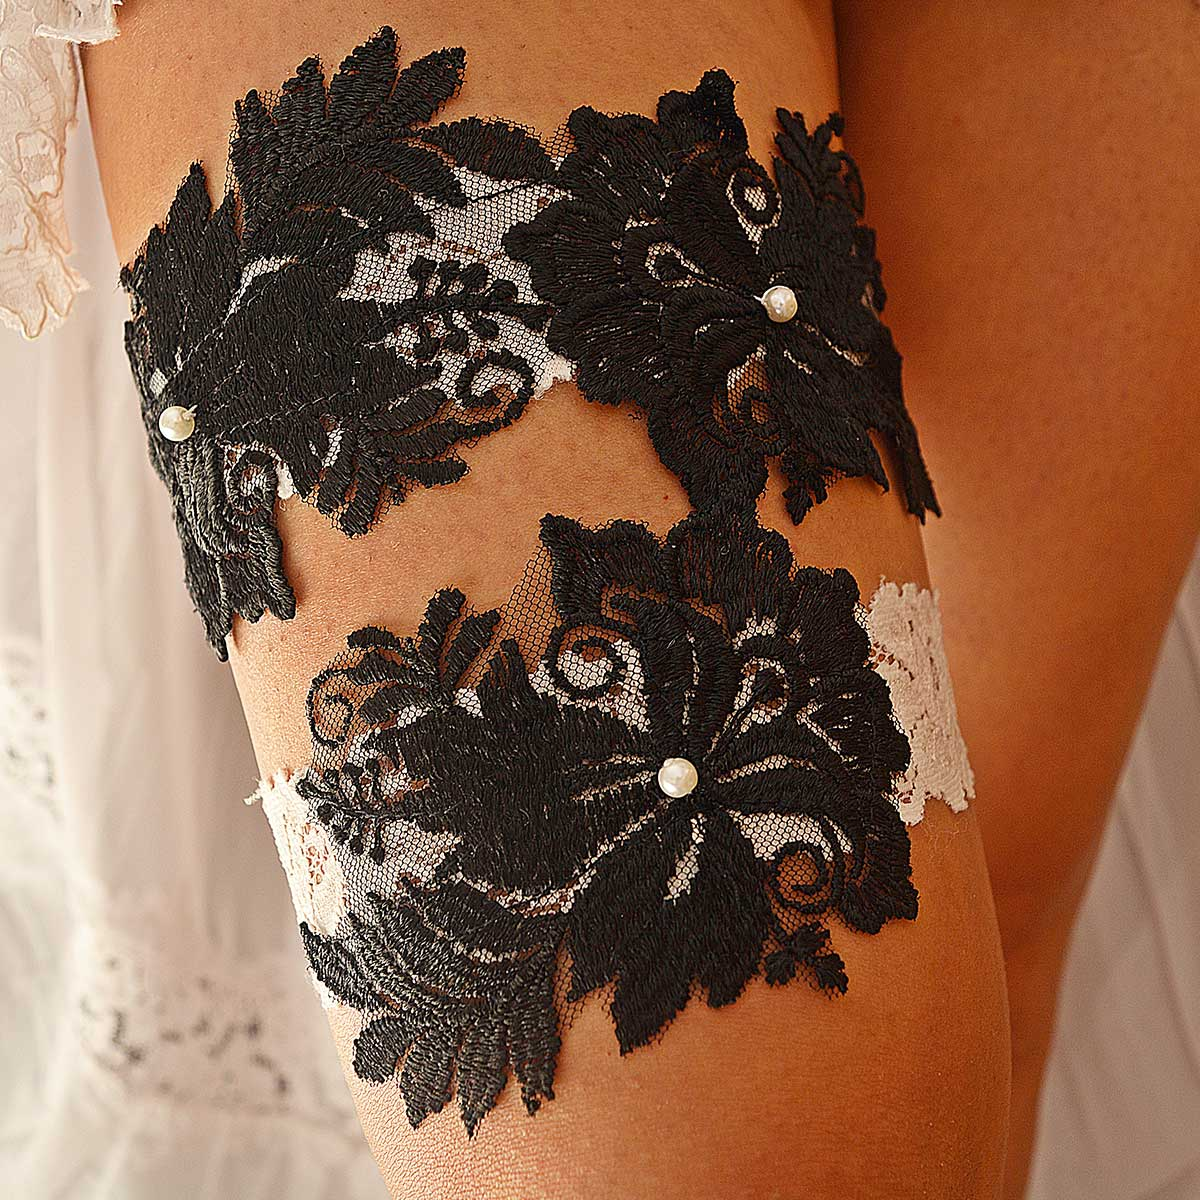 White Bridal Garter With Pearls & Black Flower Lace Applique - Wedding Garter - SuzannaM Designs